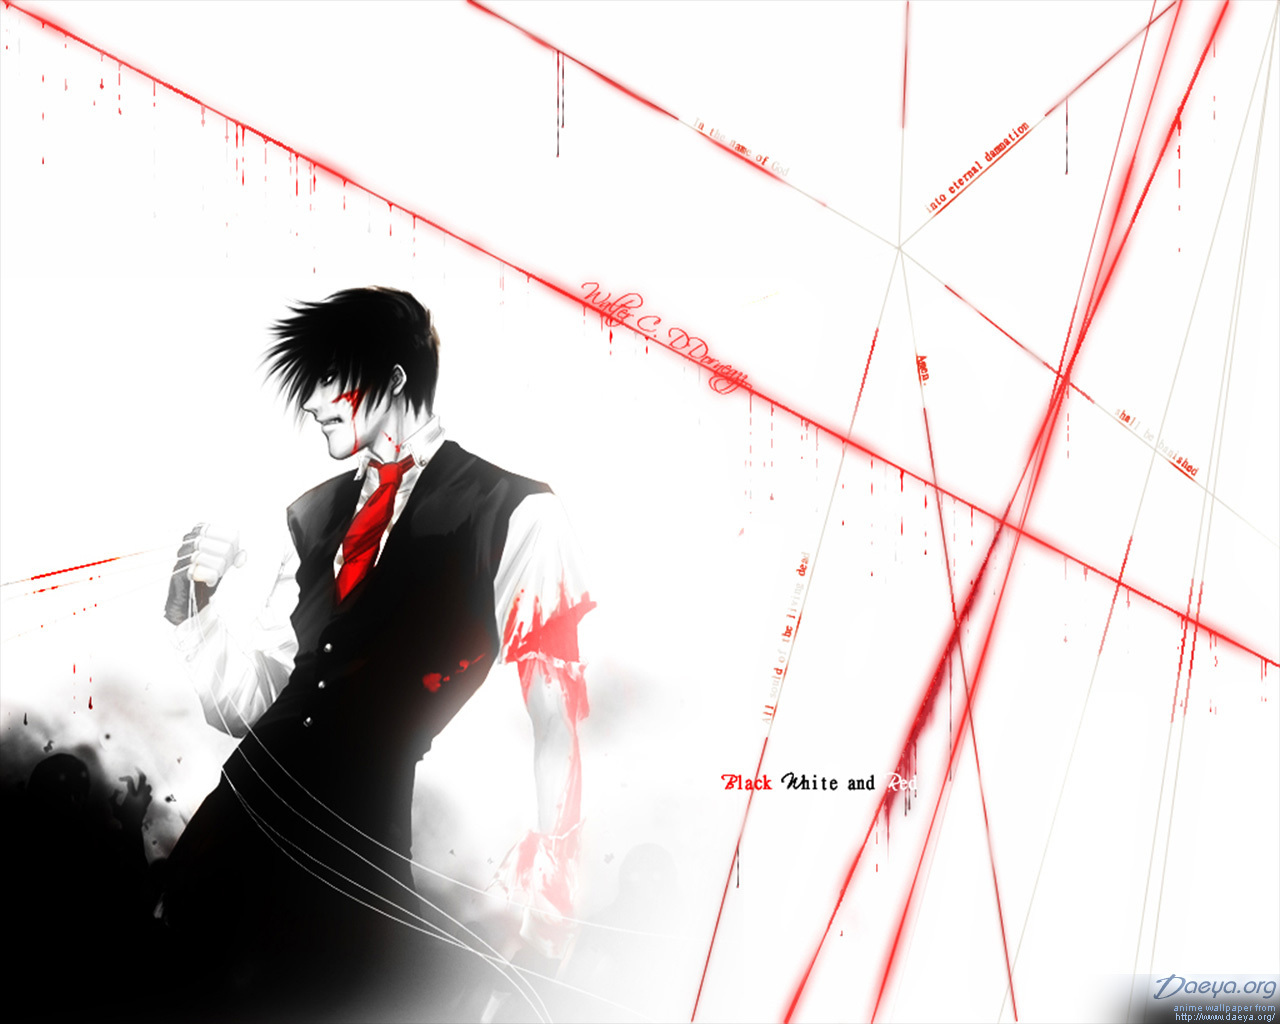 Hellsing images walter black white and red hd wallpaper - Black white and red wallpaper ...